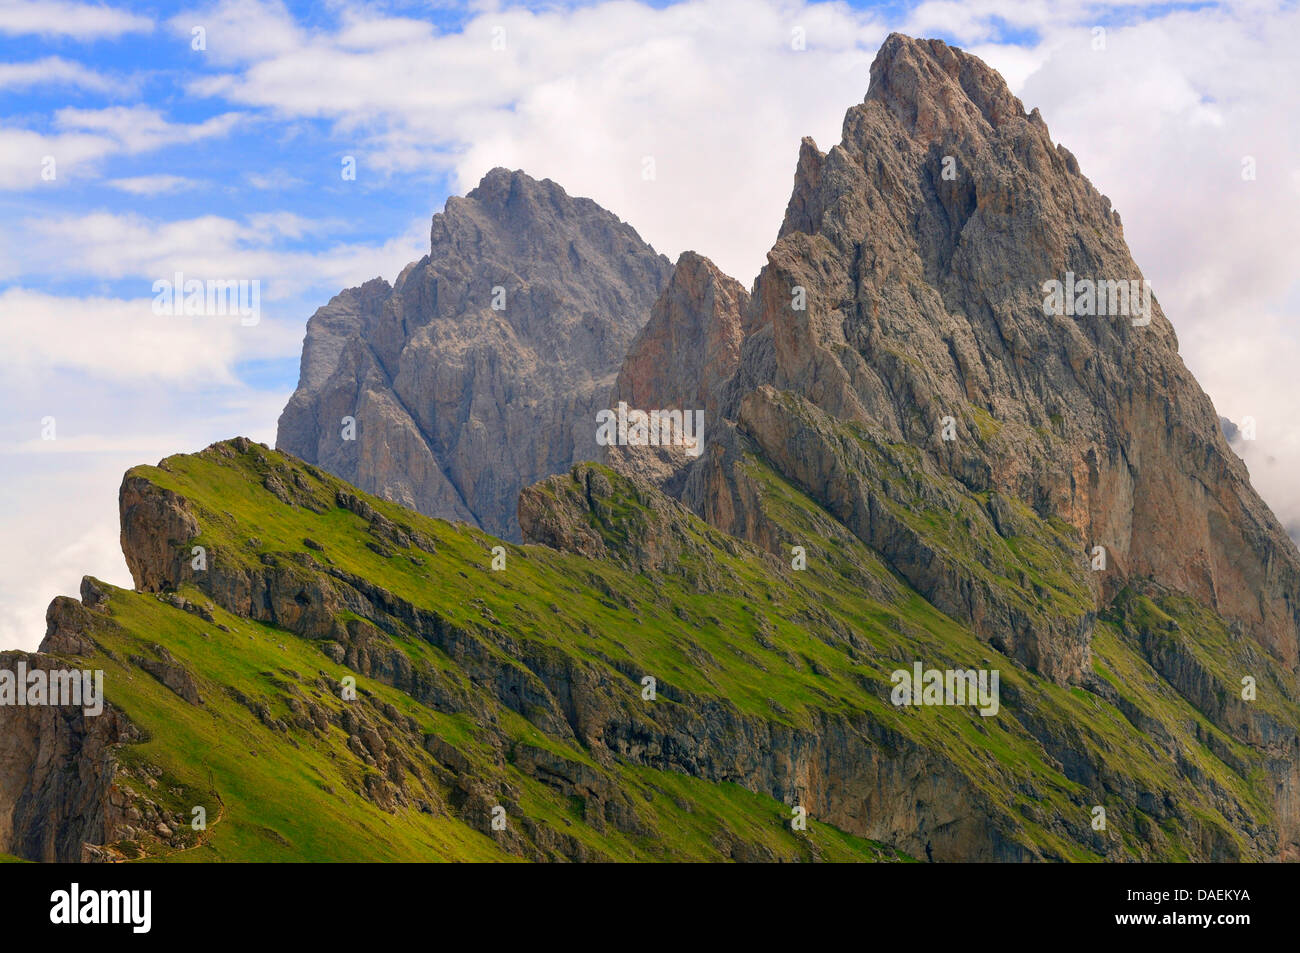 View onto the Fermeda summits, Italy - Stock Image